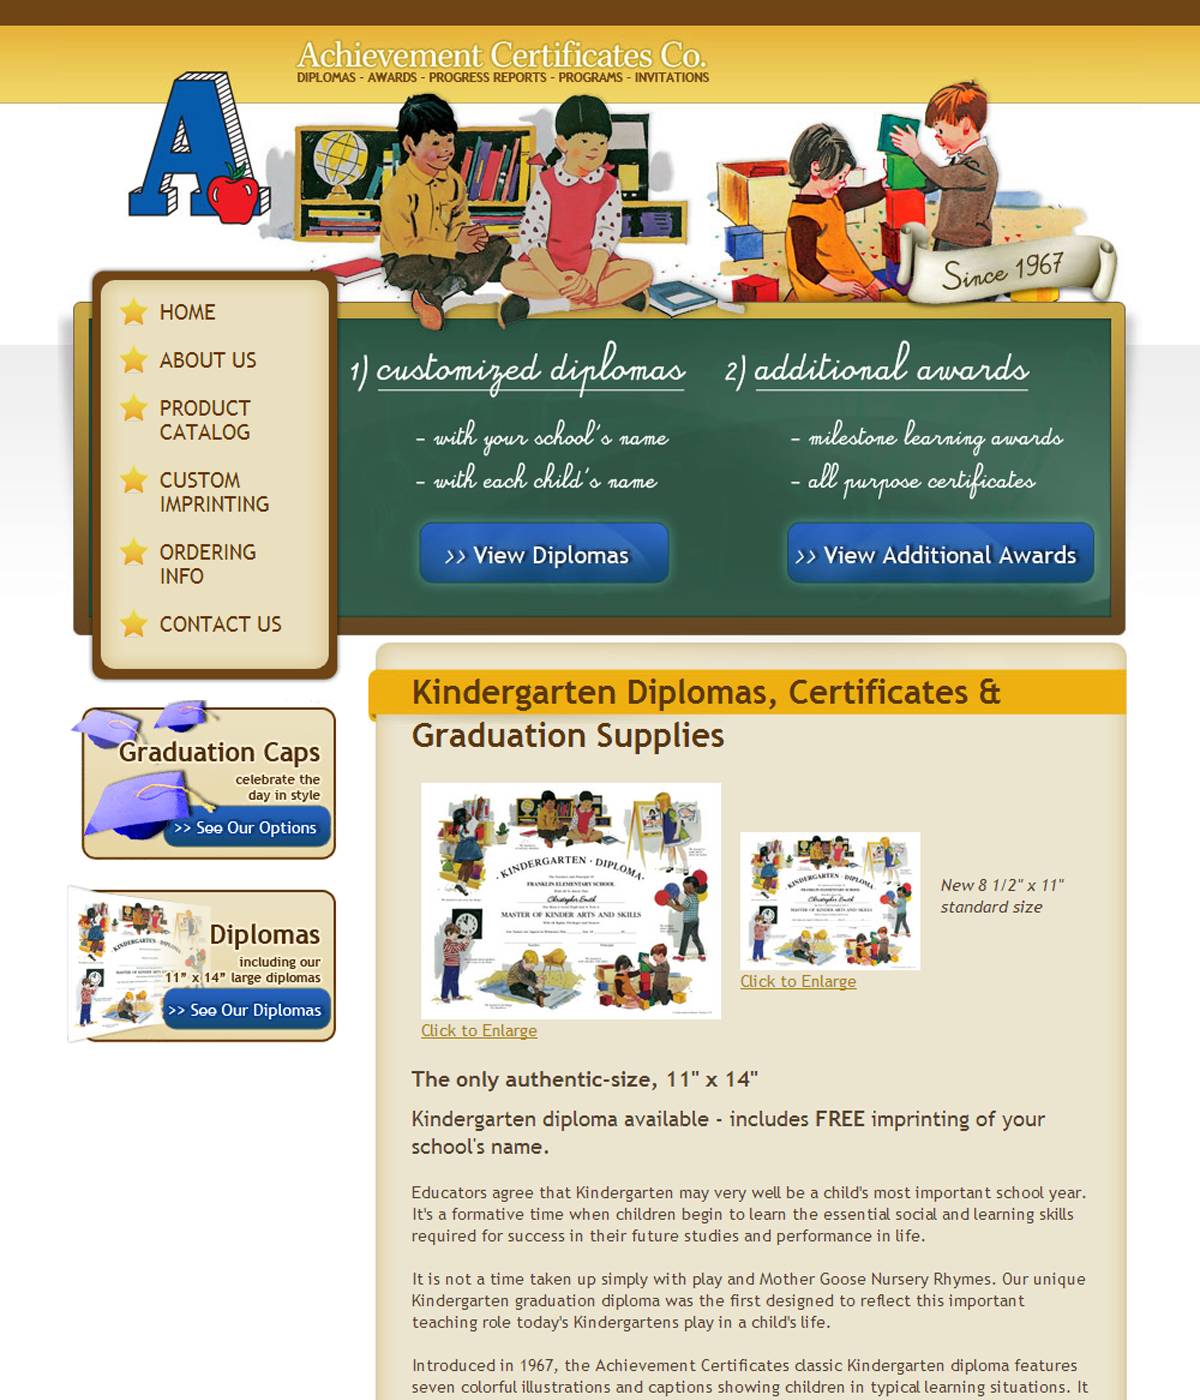 Achievement Certificates Co.